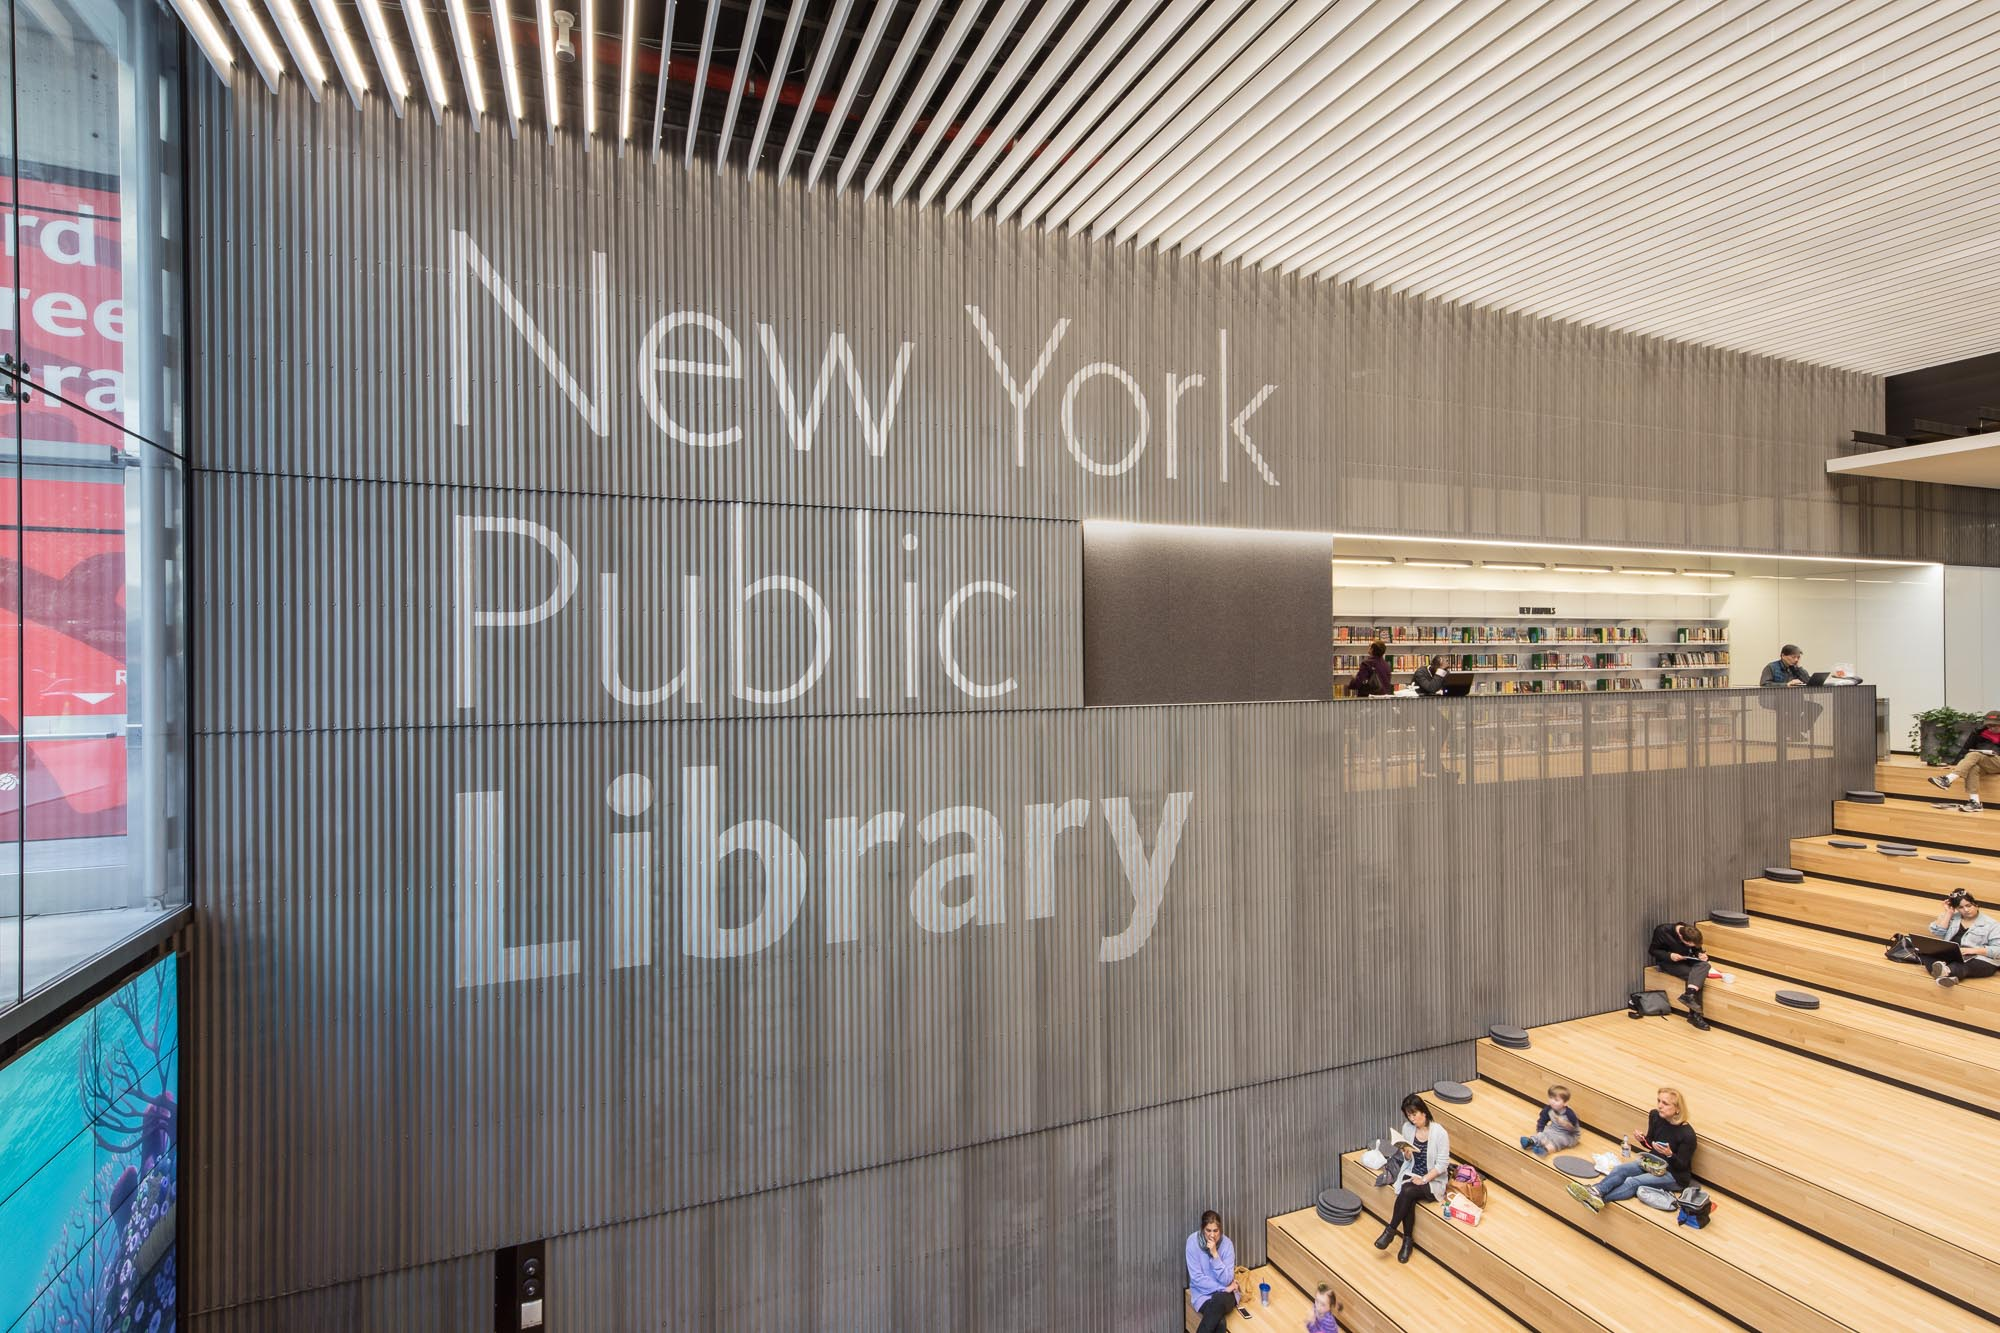 New York Public Library 53rd St 2x4